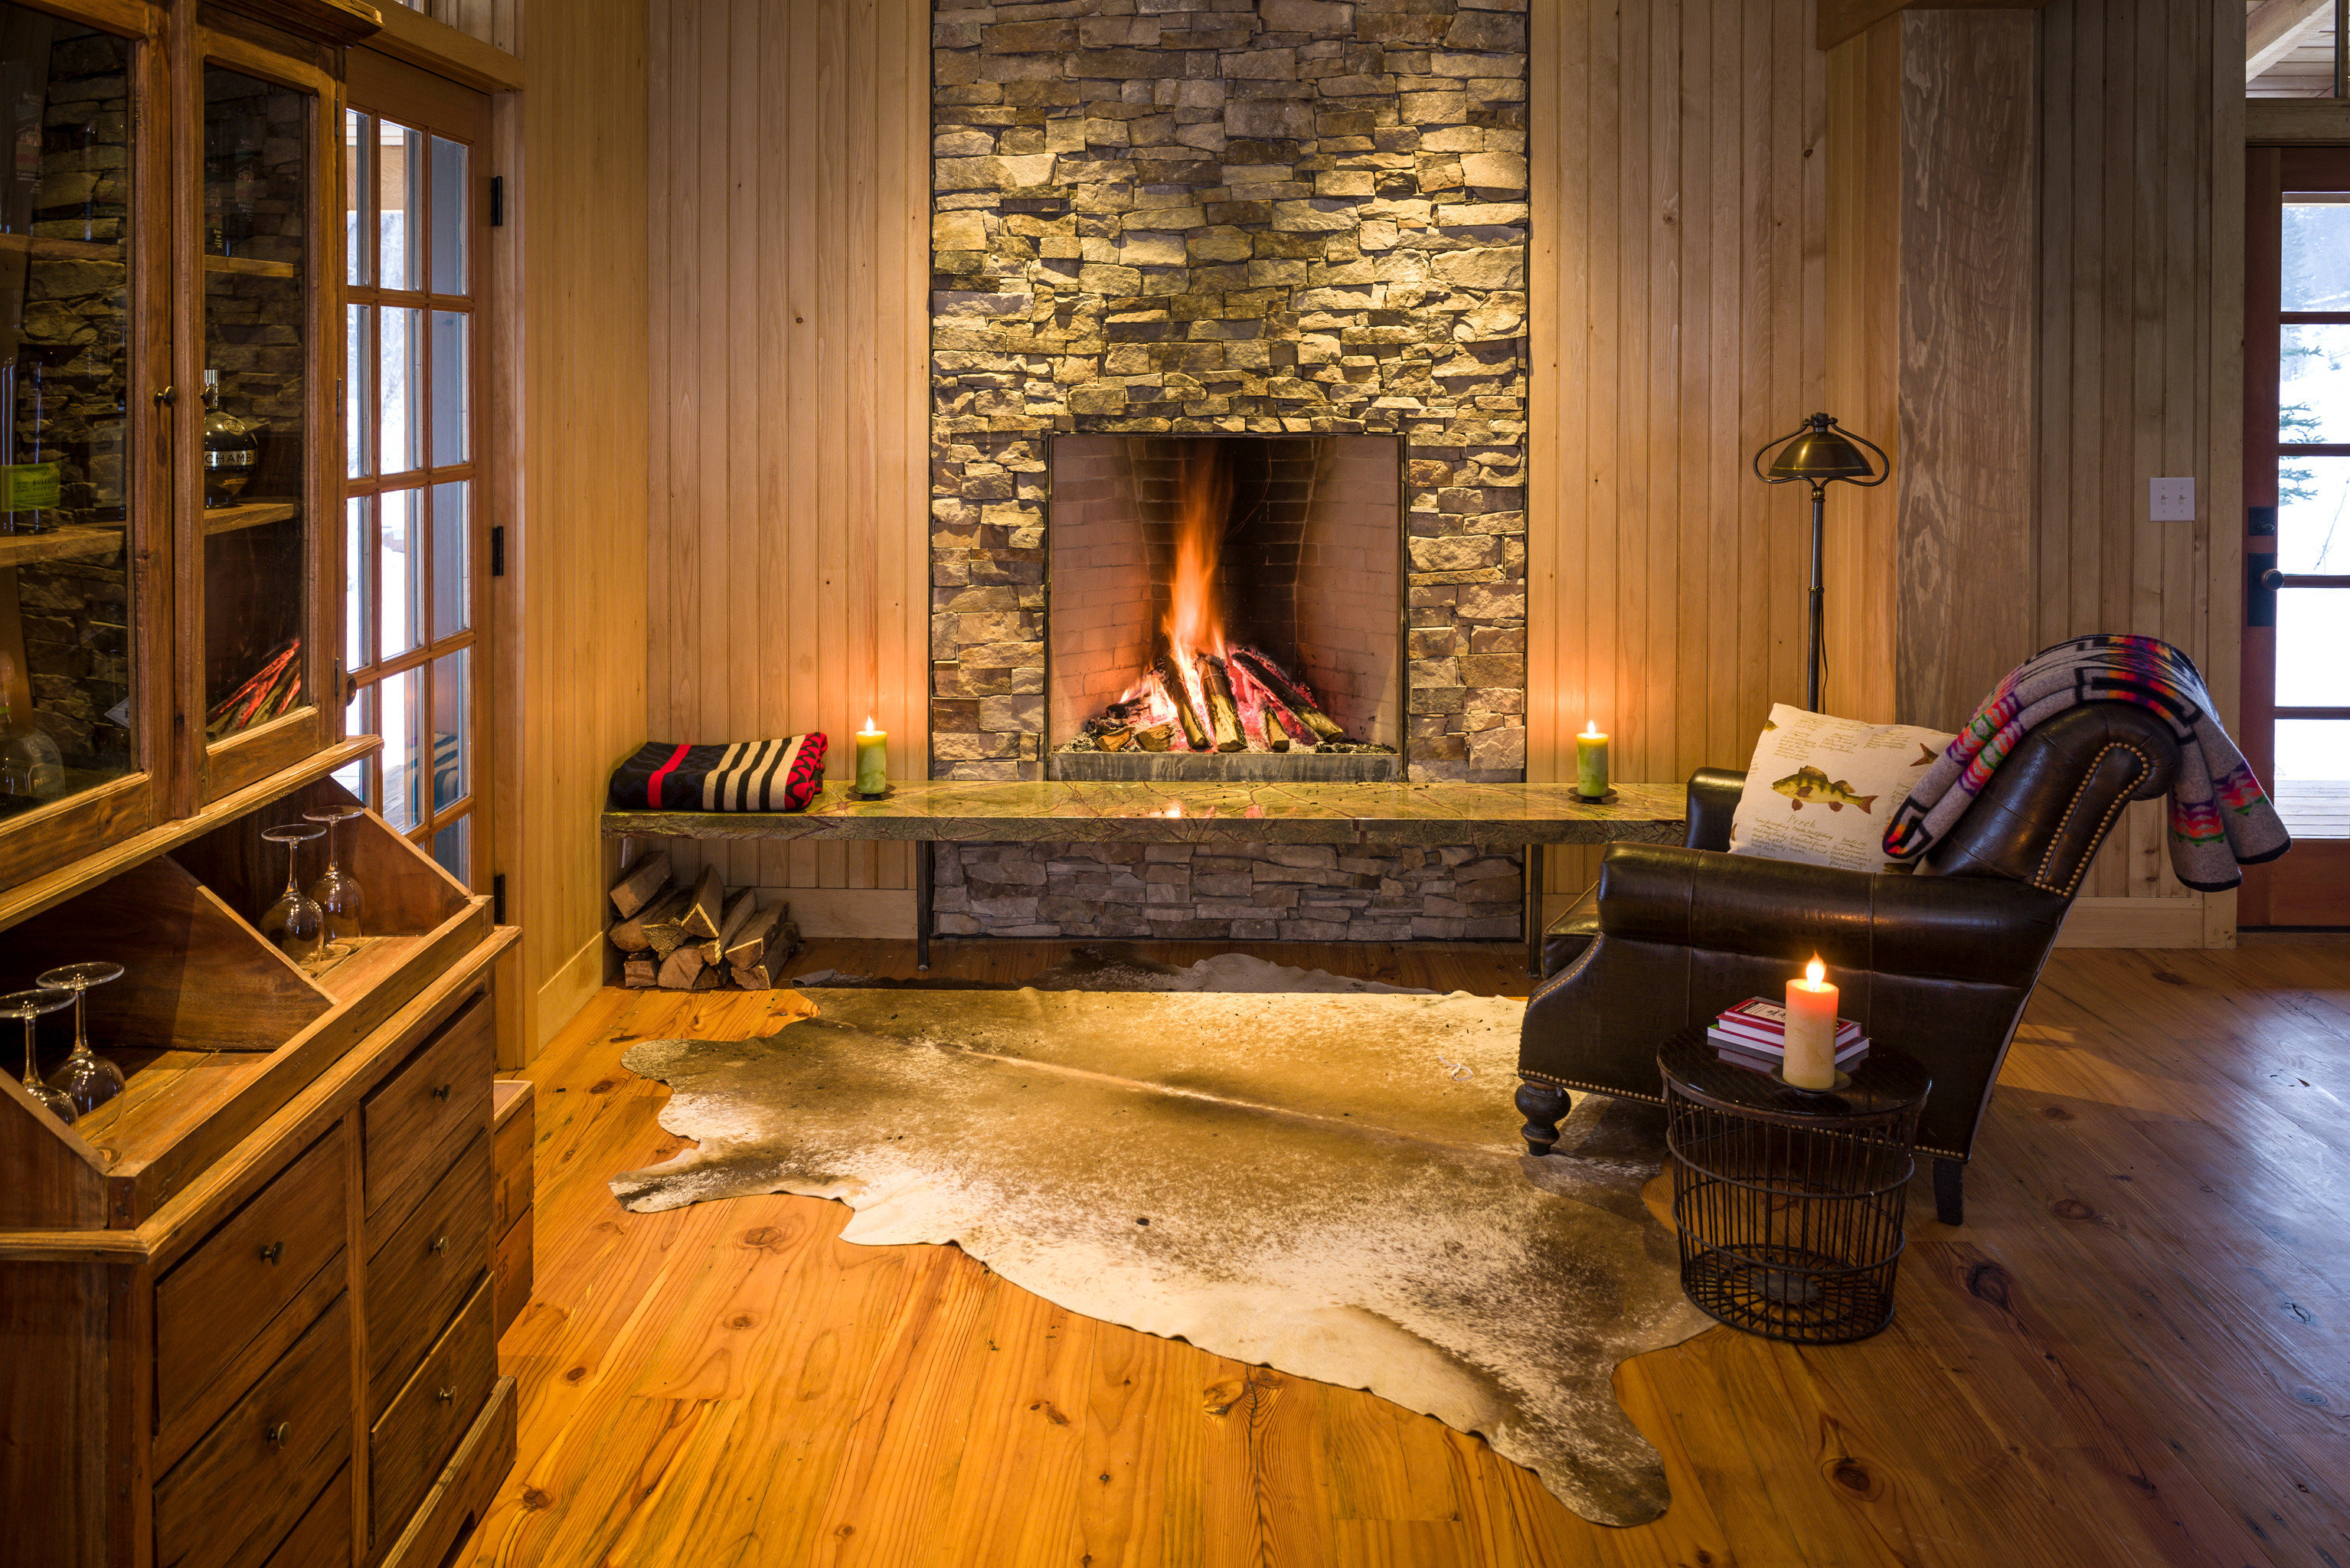 Adventure Country Forest Glamping Mountains Outdoors + Adventure Rustic Weekend Getaways Wellness building property Fireplace home hearth hardwood living room house cottage wooden wood flooring farmhouse flooring hard